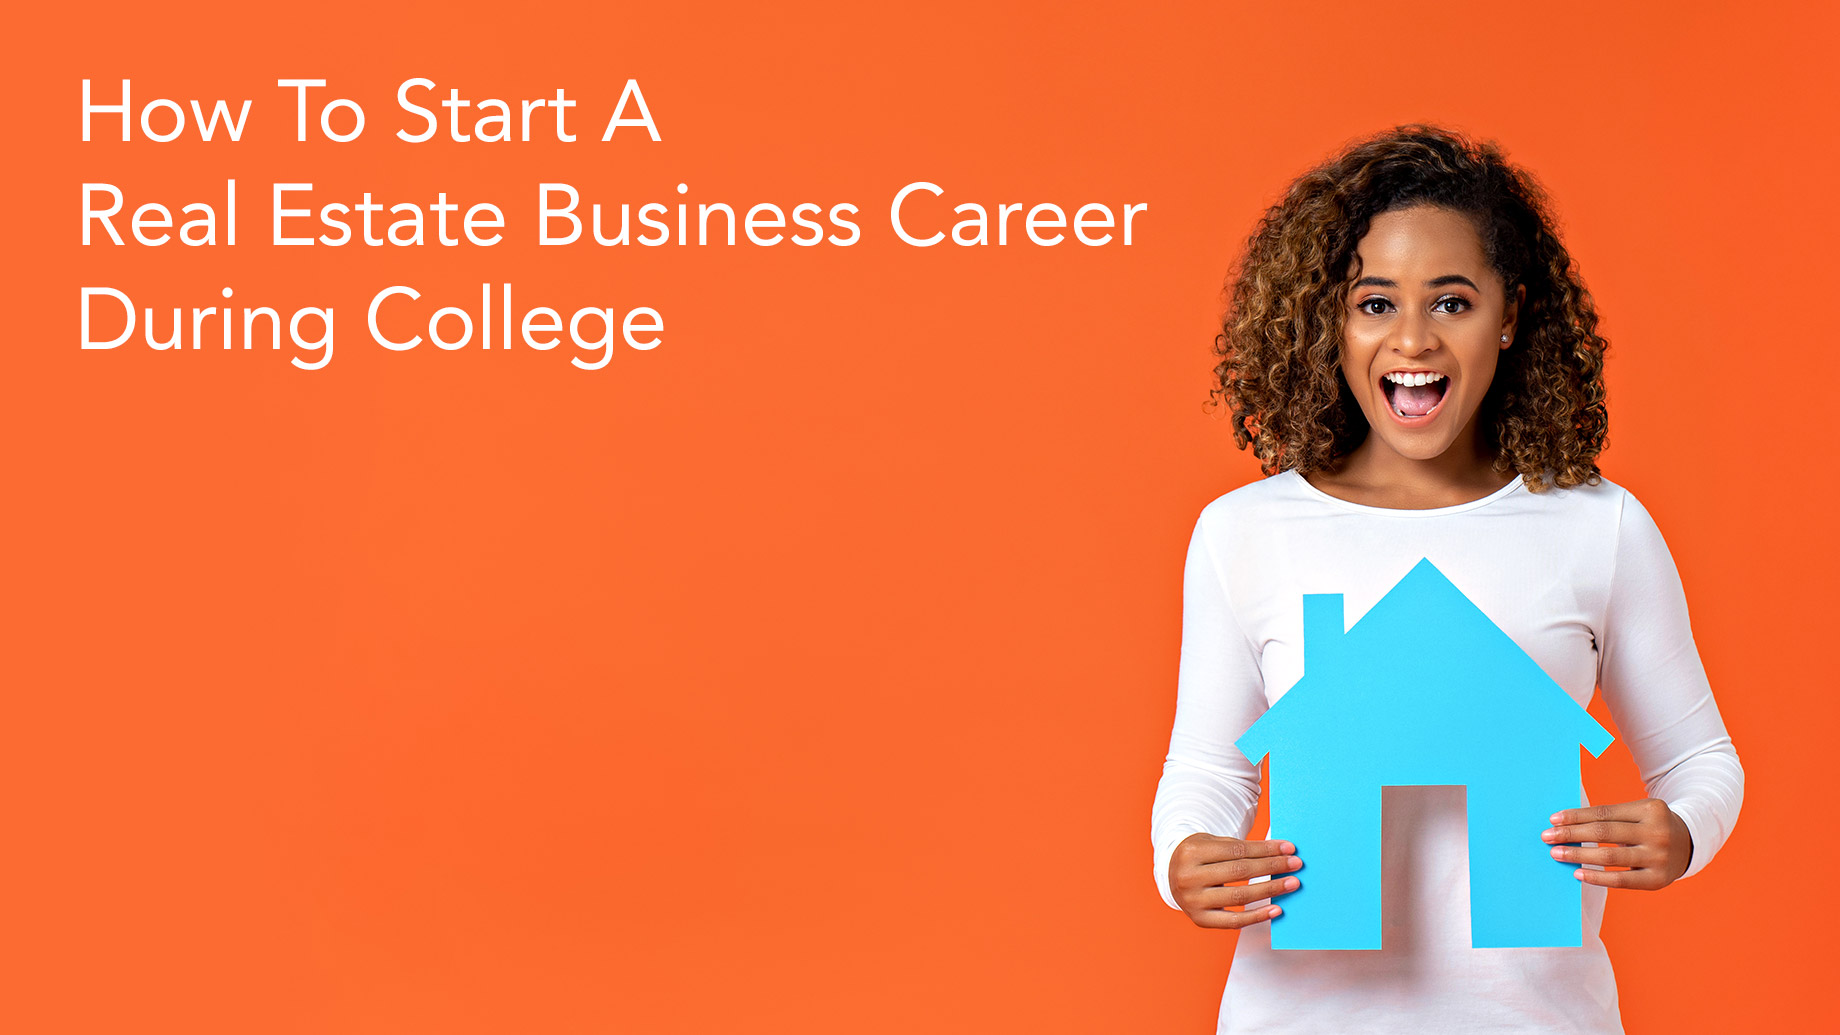 How To Start A Real Estate Business Career During College